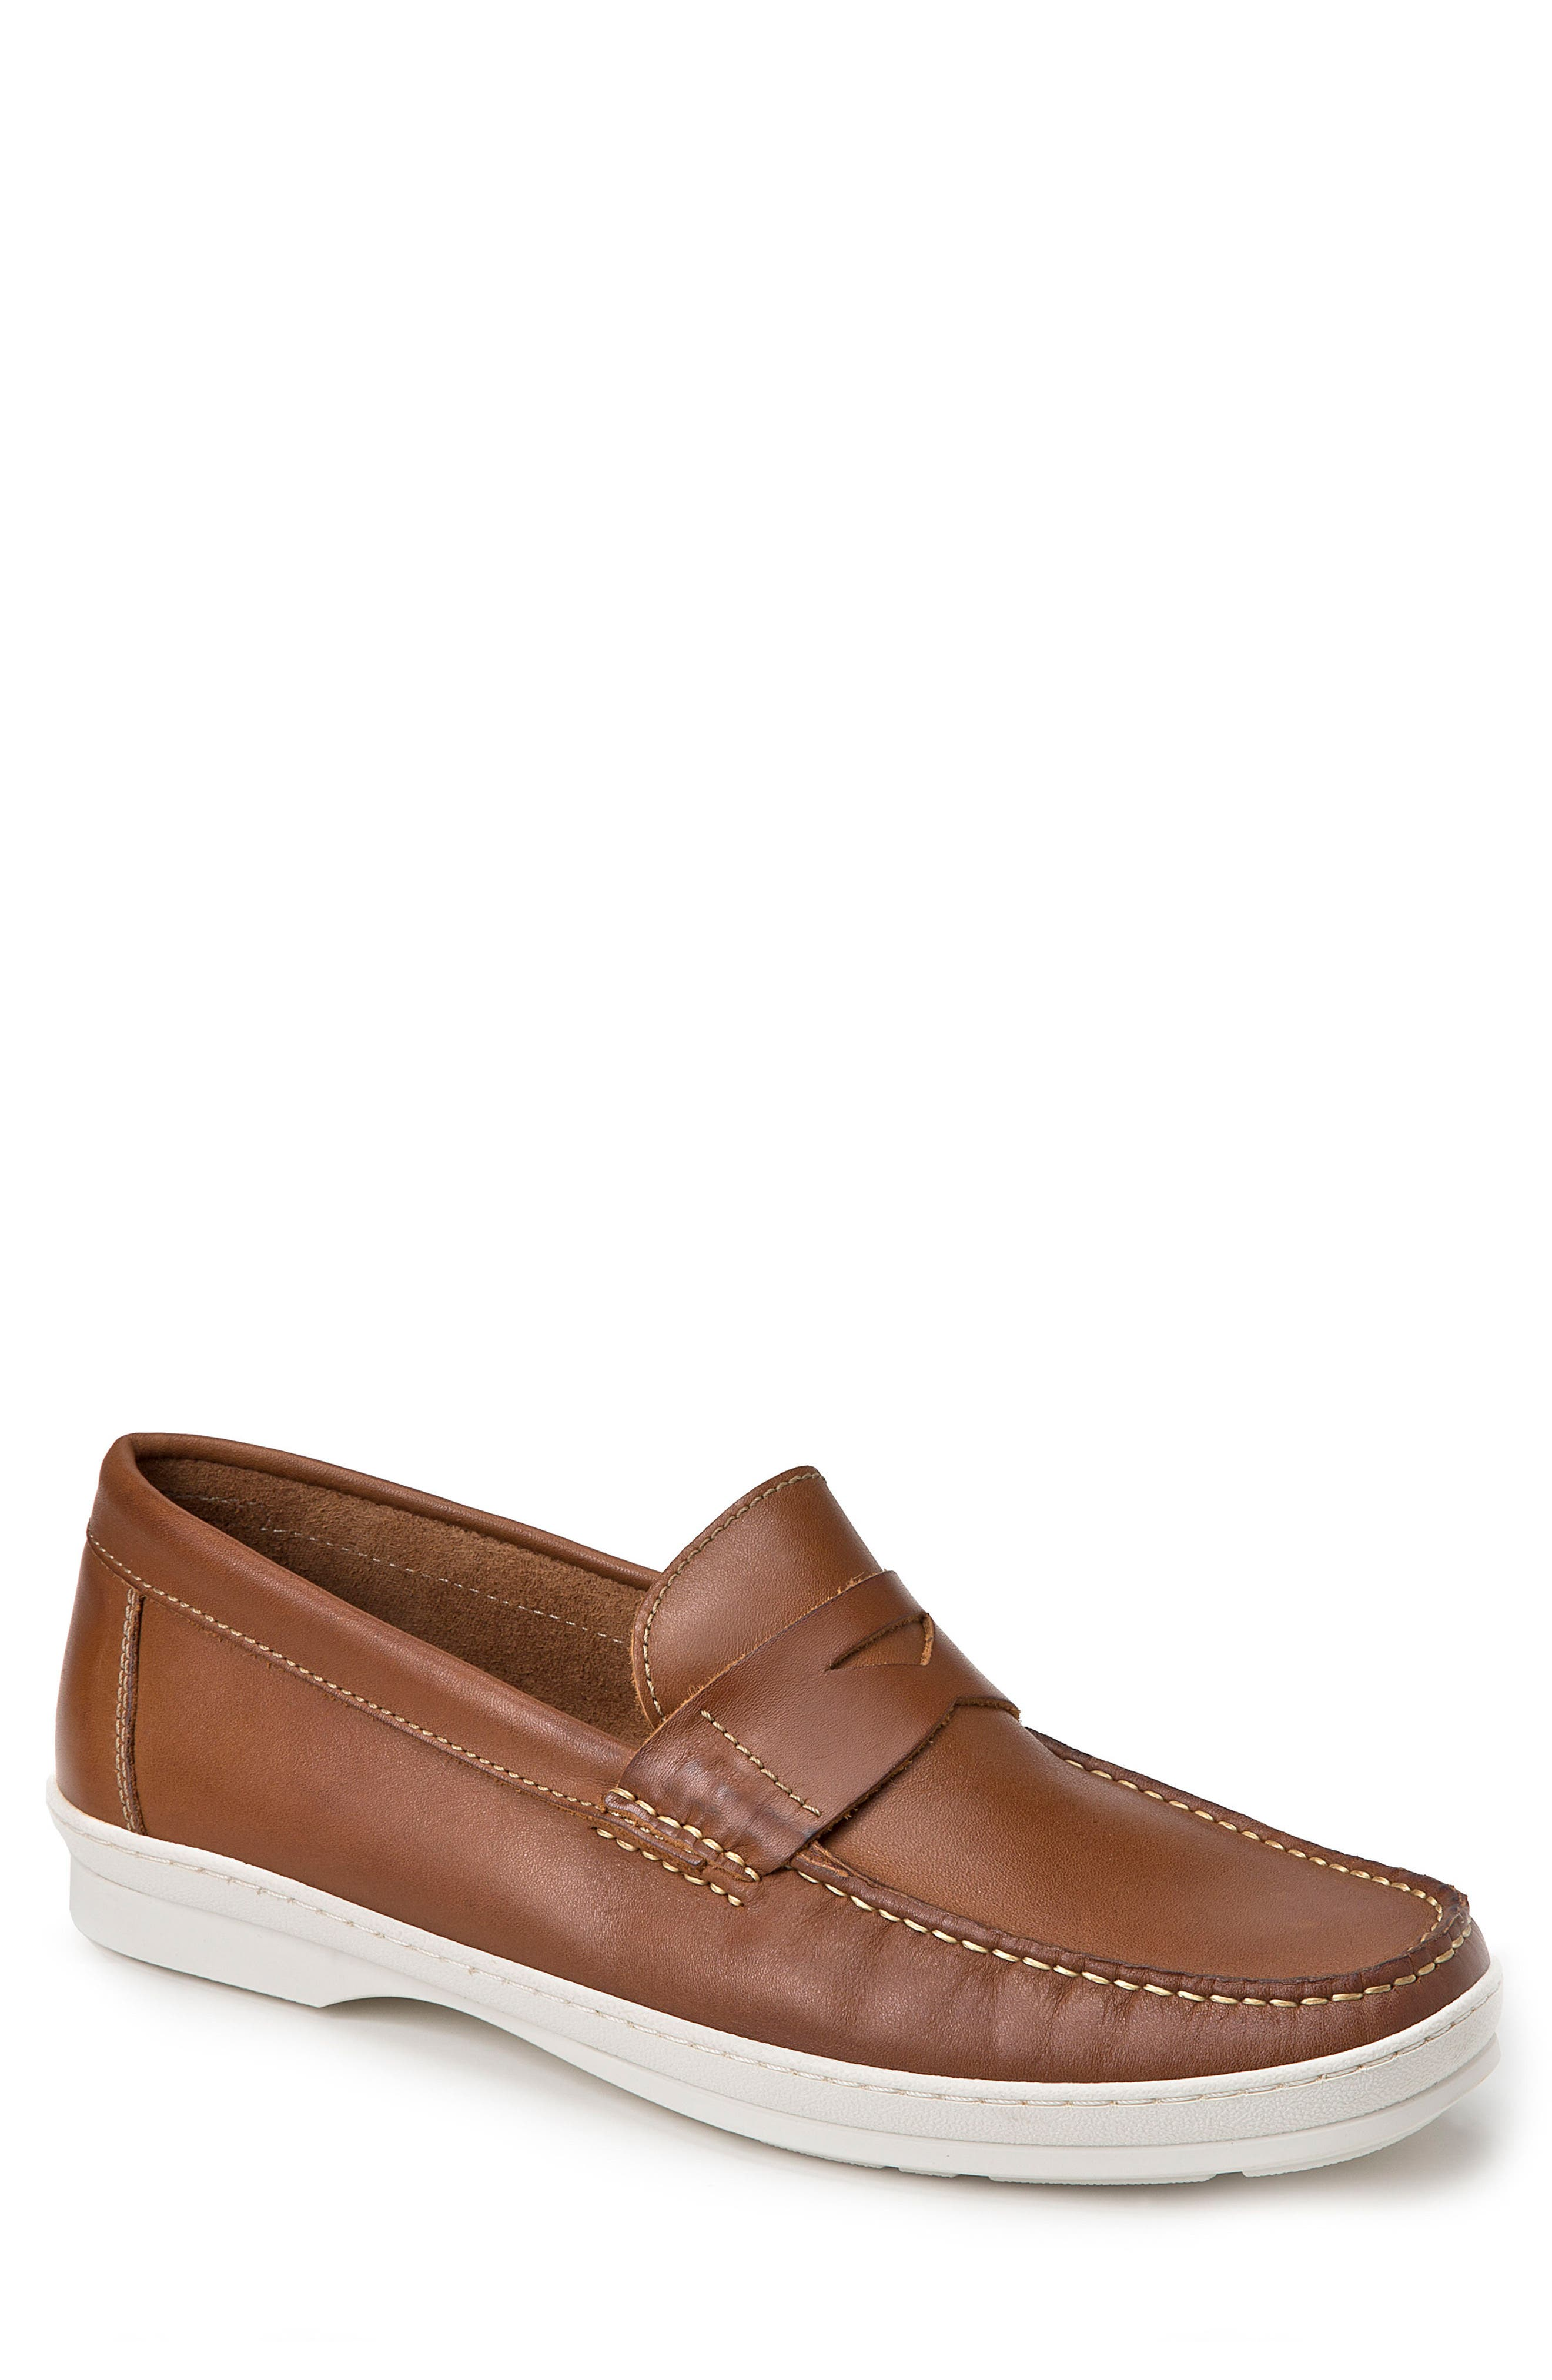 Simon Penny Loafer,                             Main thumbnail 1, color,                             Tan Leather